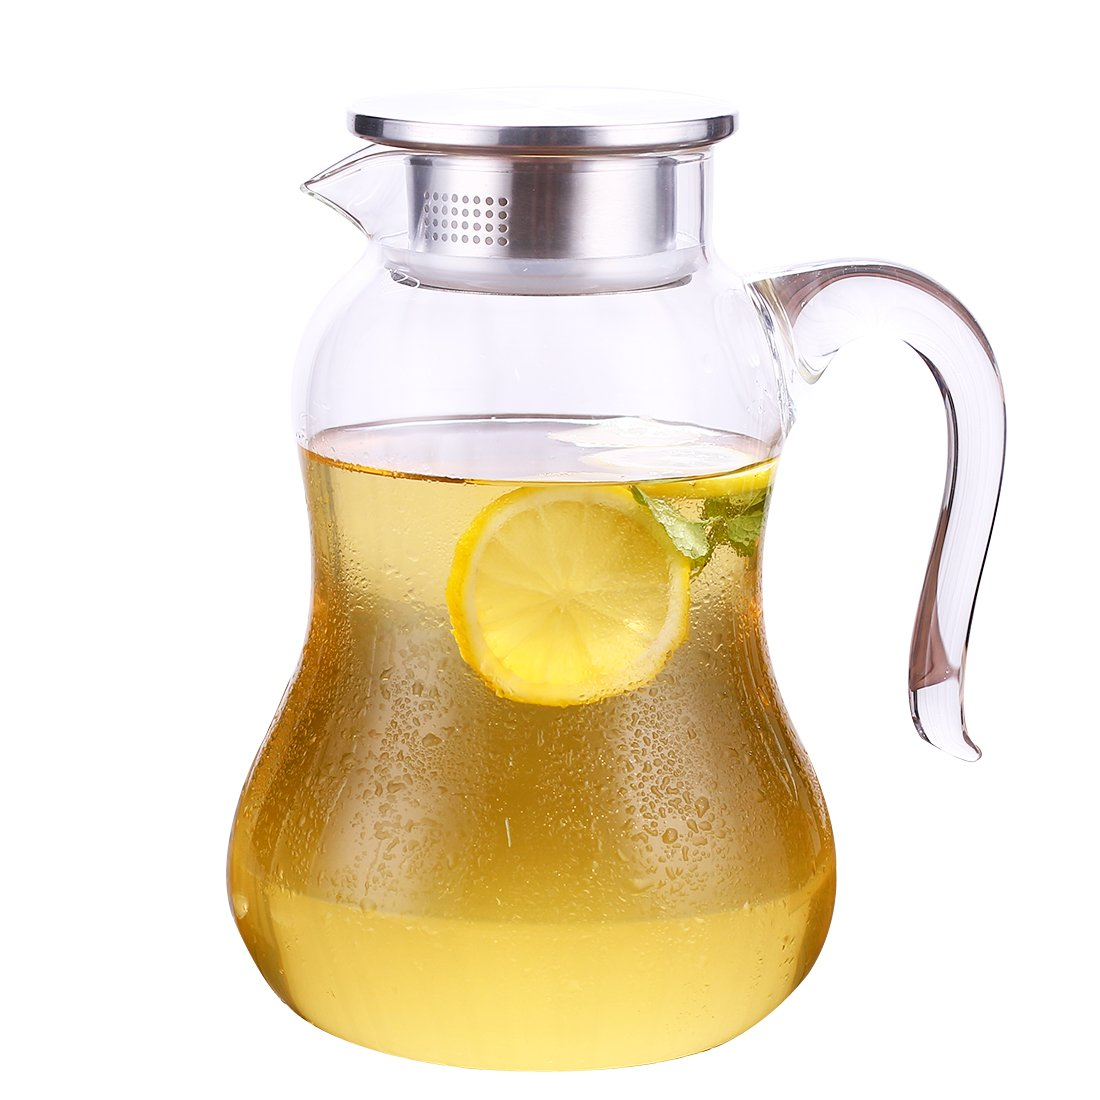 JIAQI Glass Juice Pitcher with Stainless Steel Lid and Spout, 68 Ounces Borosilicate Water Carafe with Non-Slip Handle, Perfect for Homemade Juice & Iced Tea Pitchers